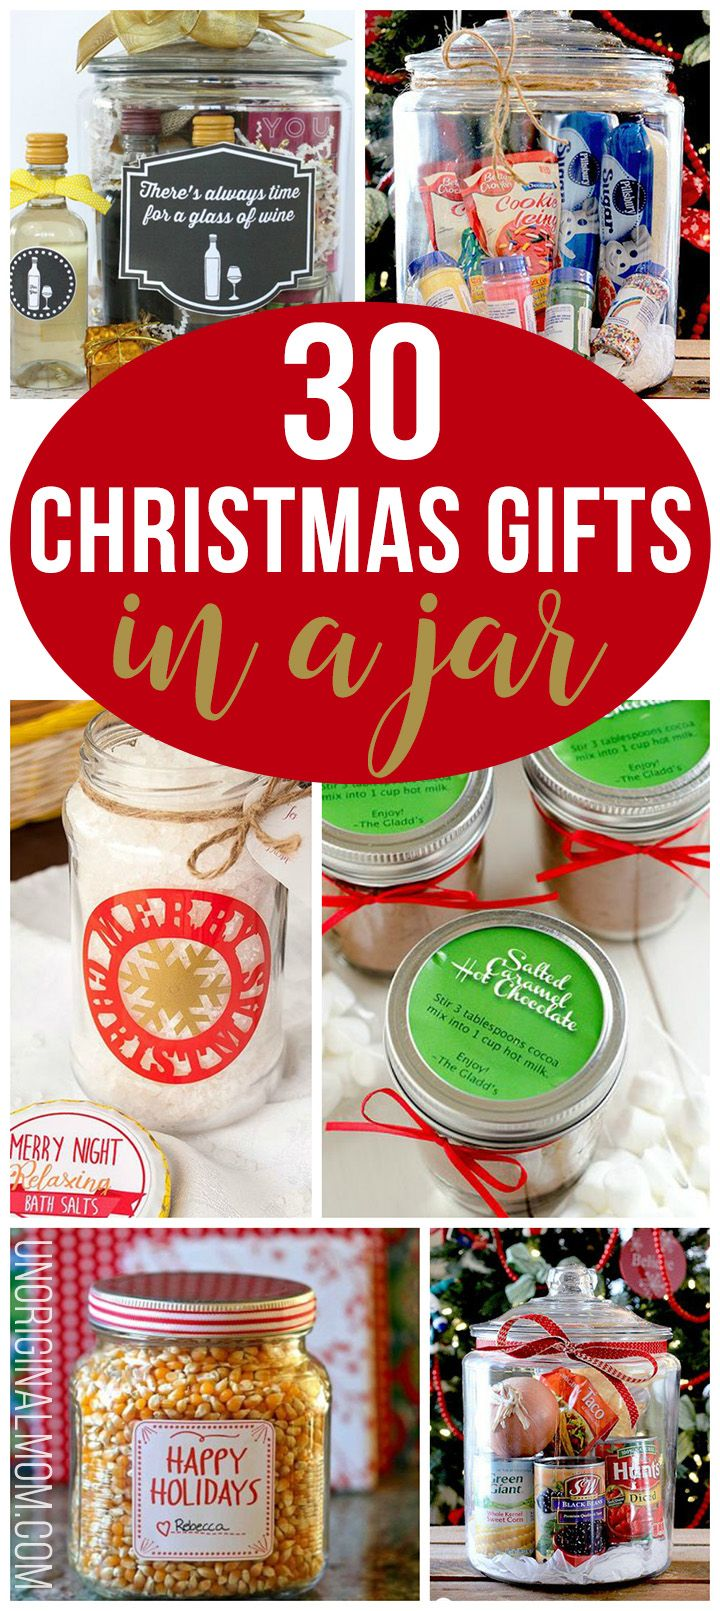 30 Christmas Gifts in a Jar | In a jar, Unique gifts and Jars